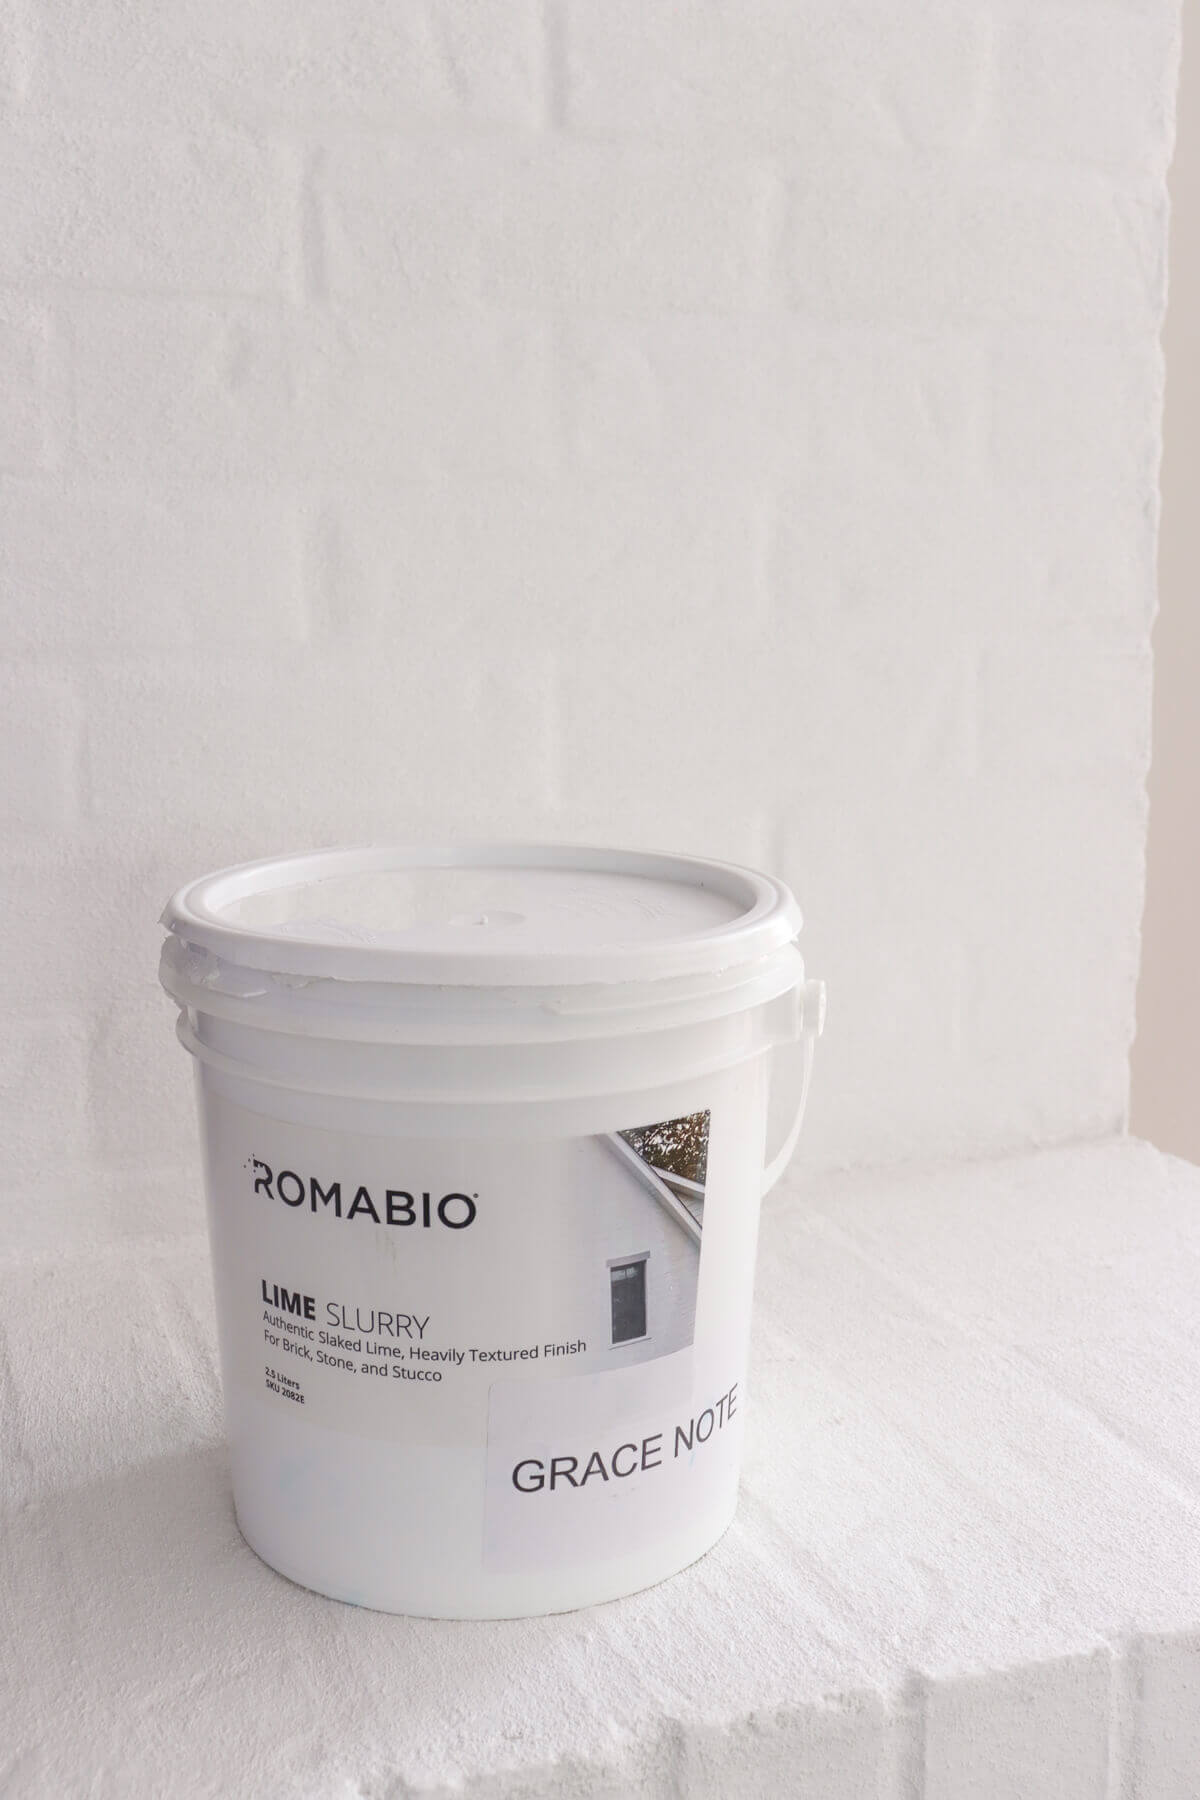 Romabio Lime Slurry Fireplace in Grace Note White